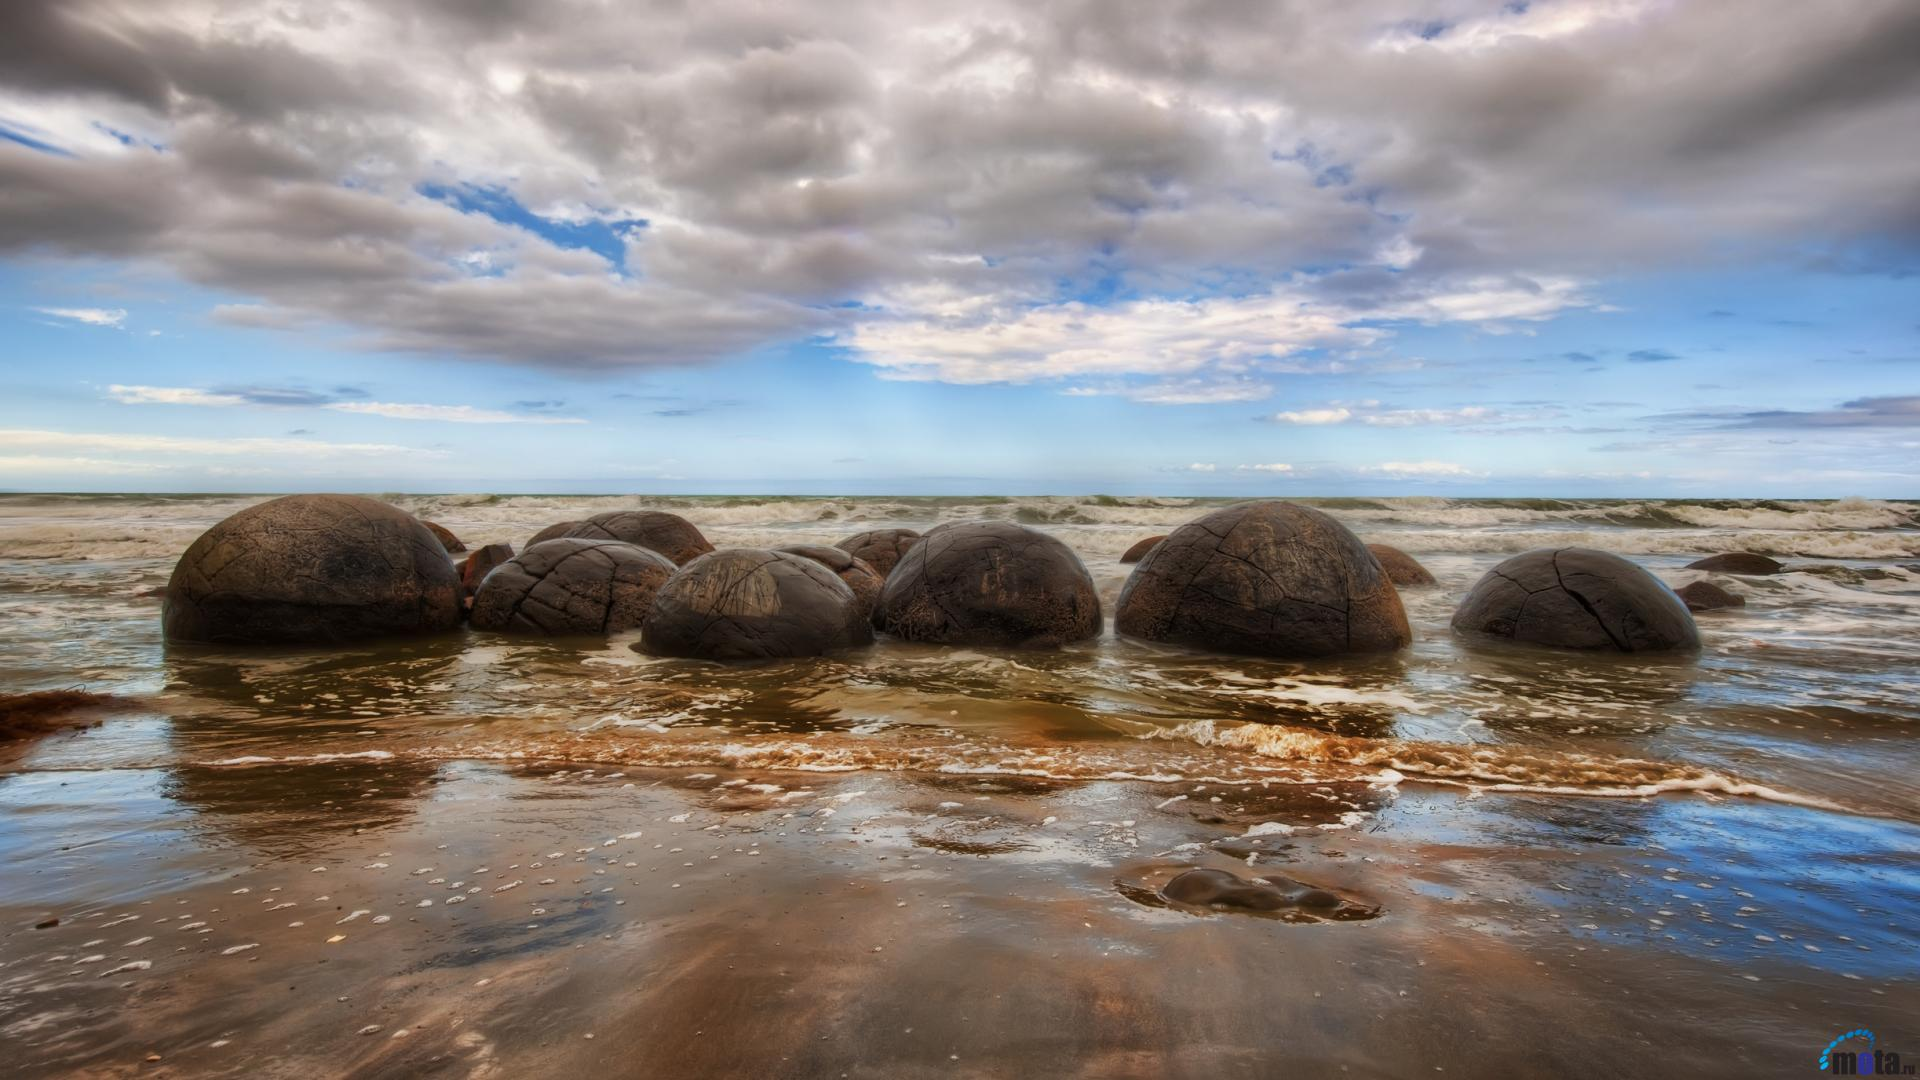 Desktop wallpapers Moeraki Boulders, New Zealand.